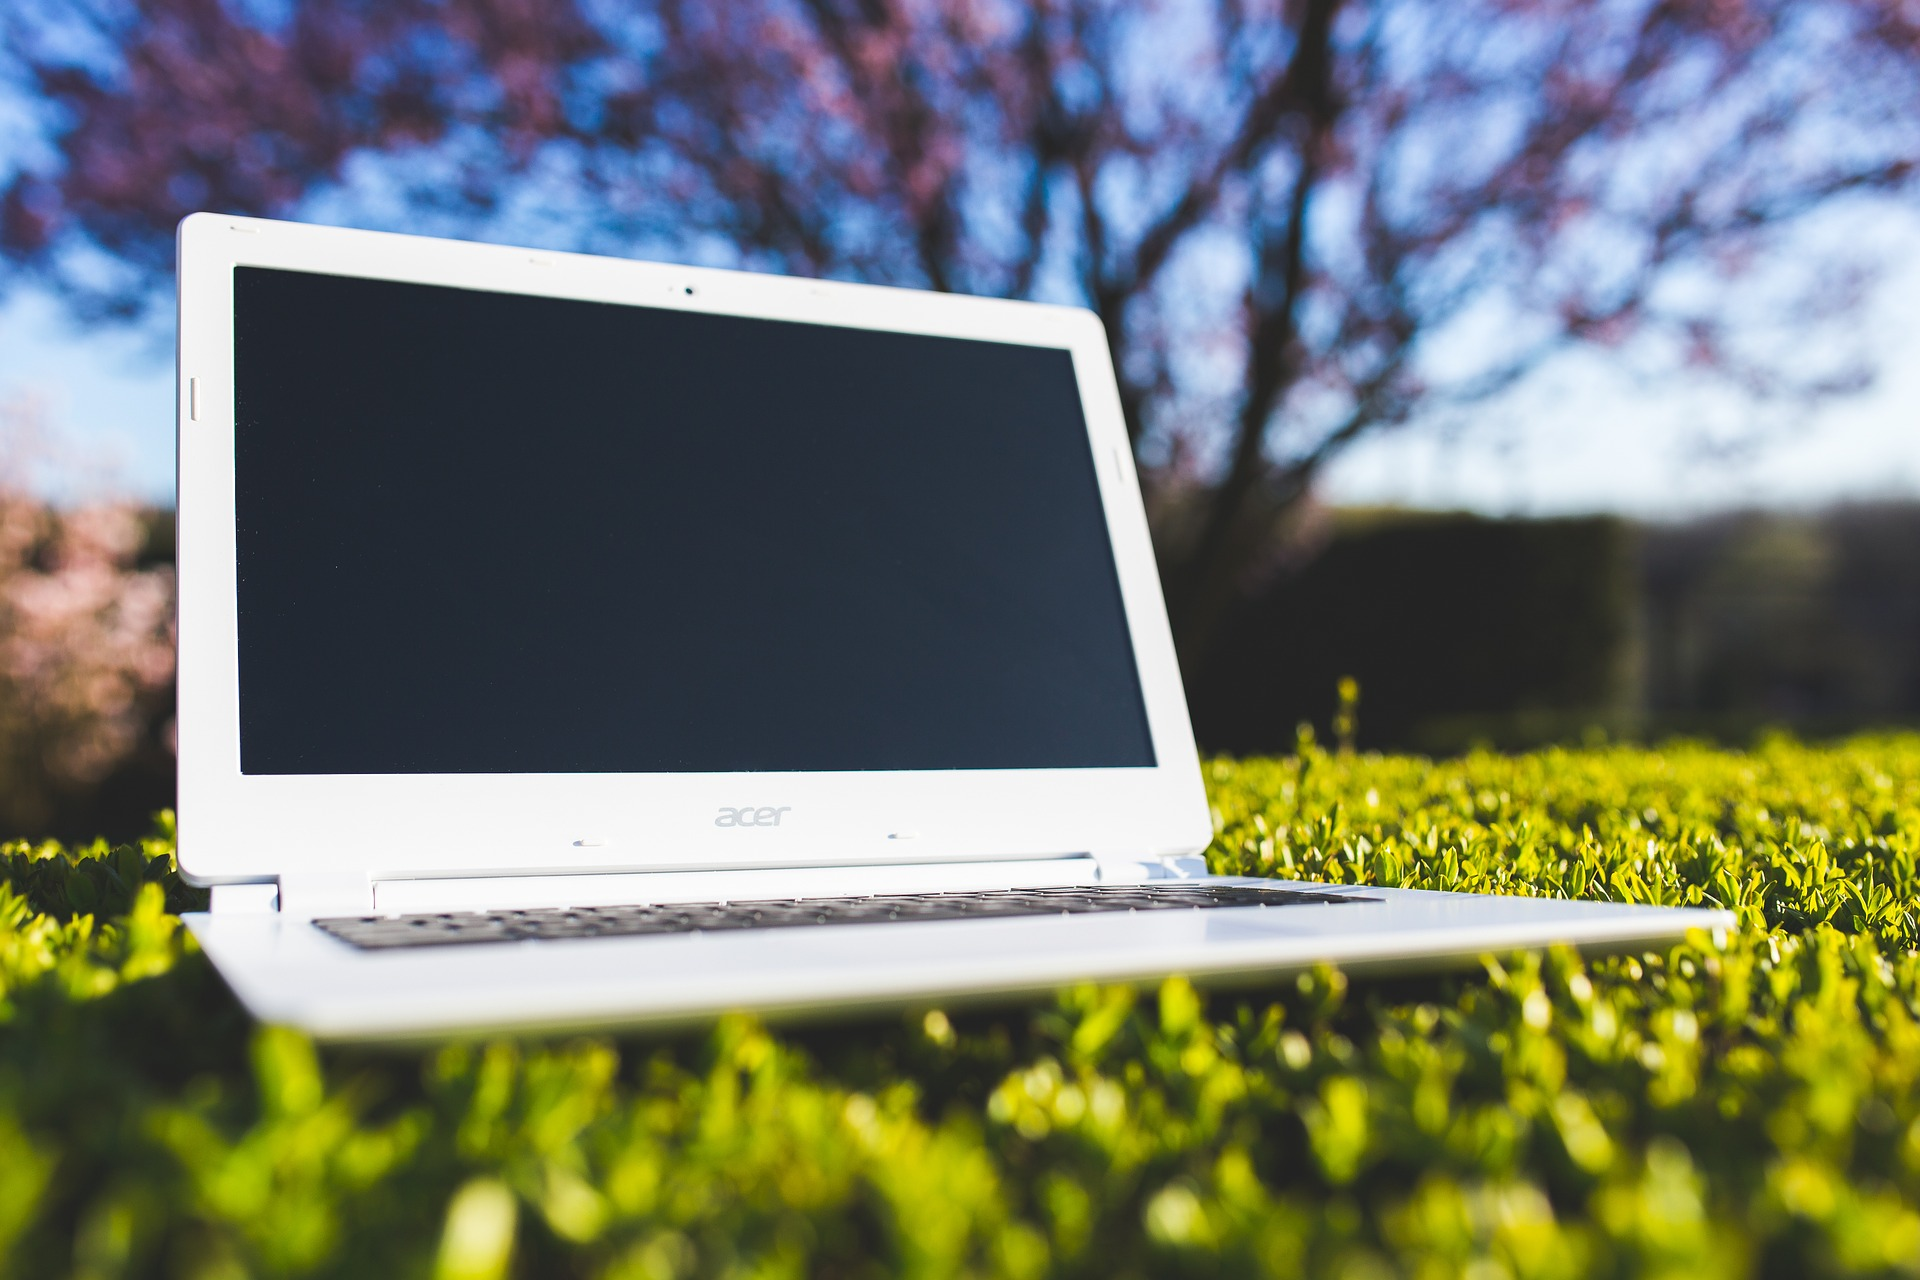 Laptop sitting on grass